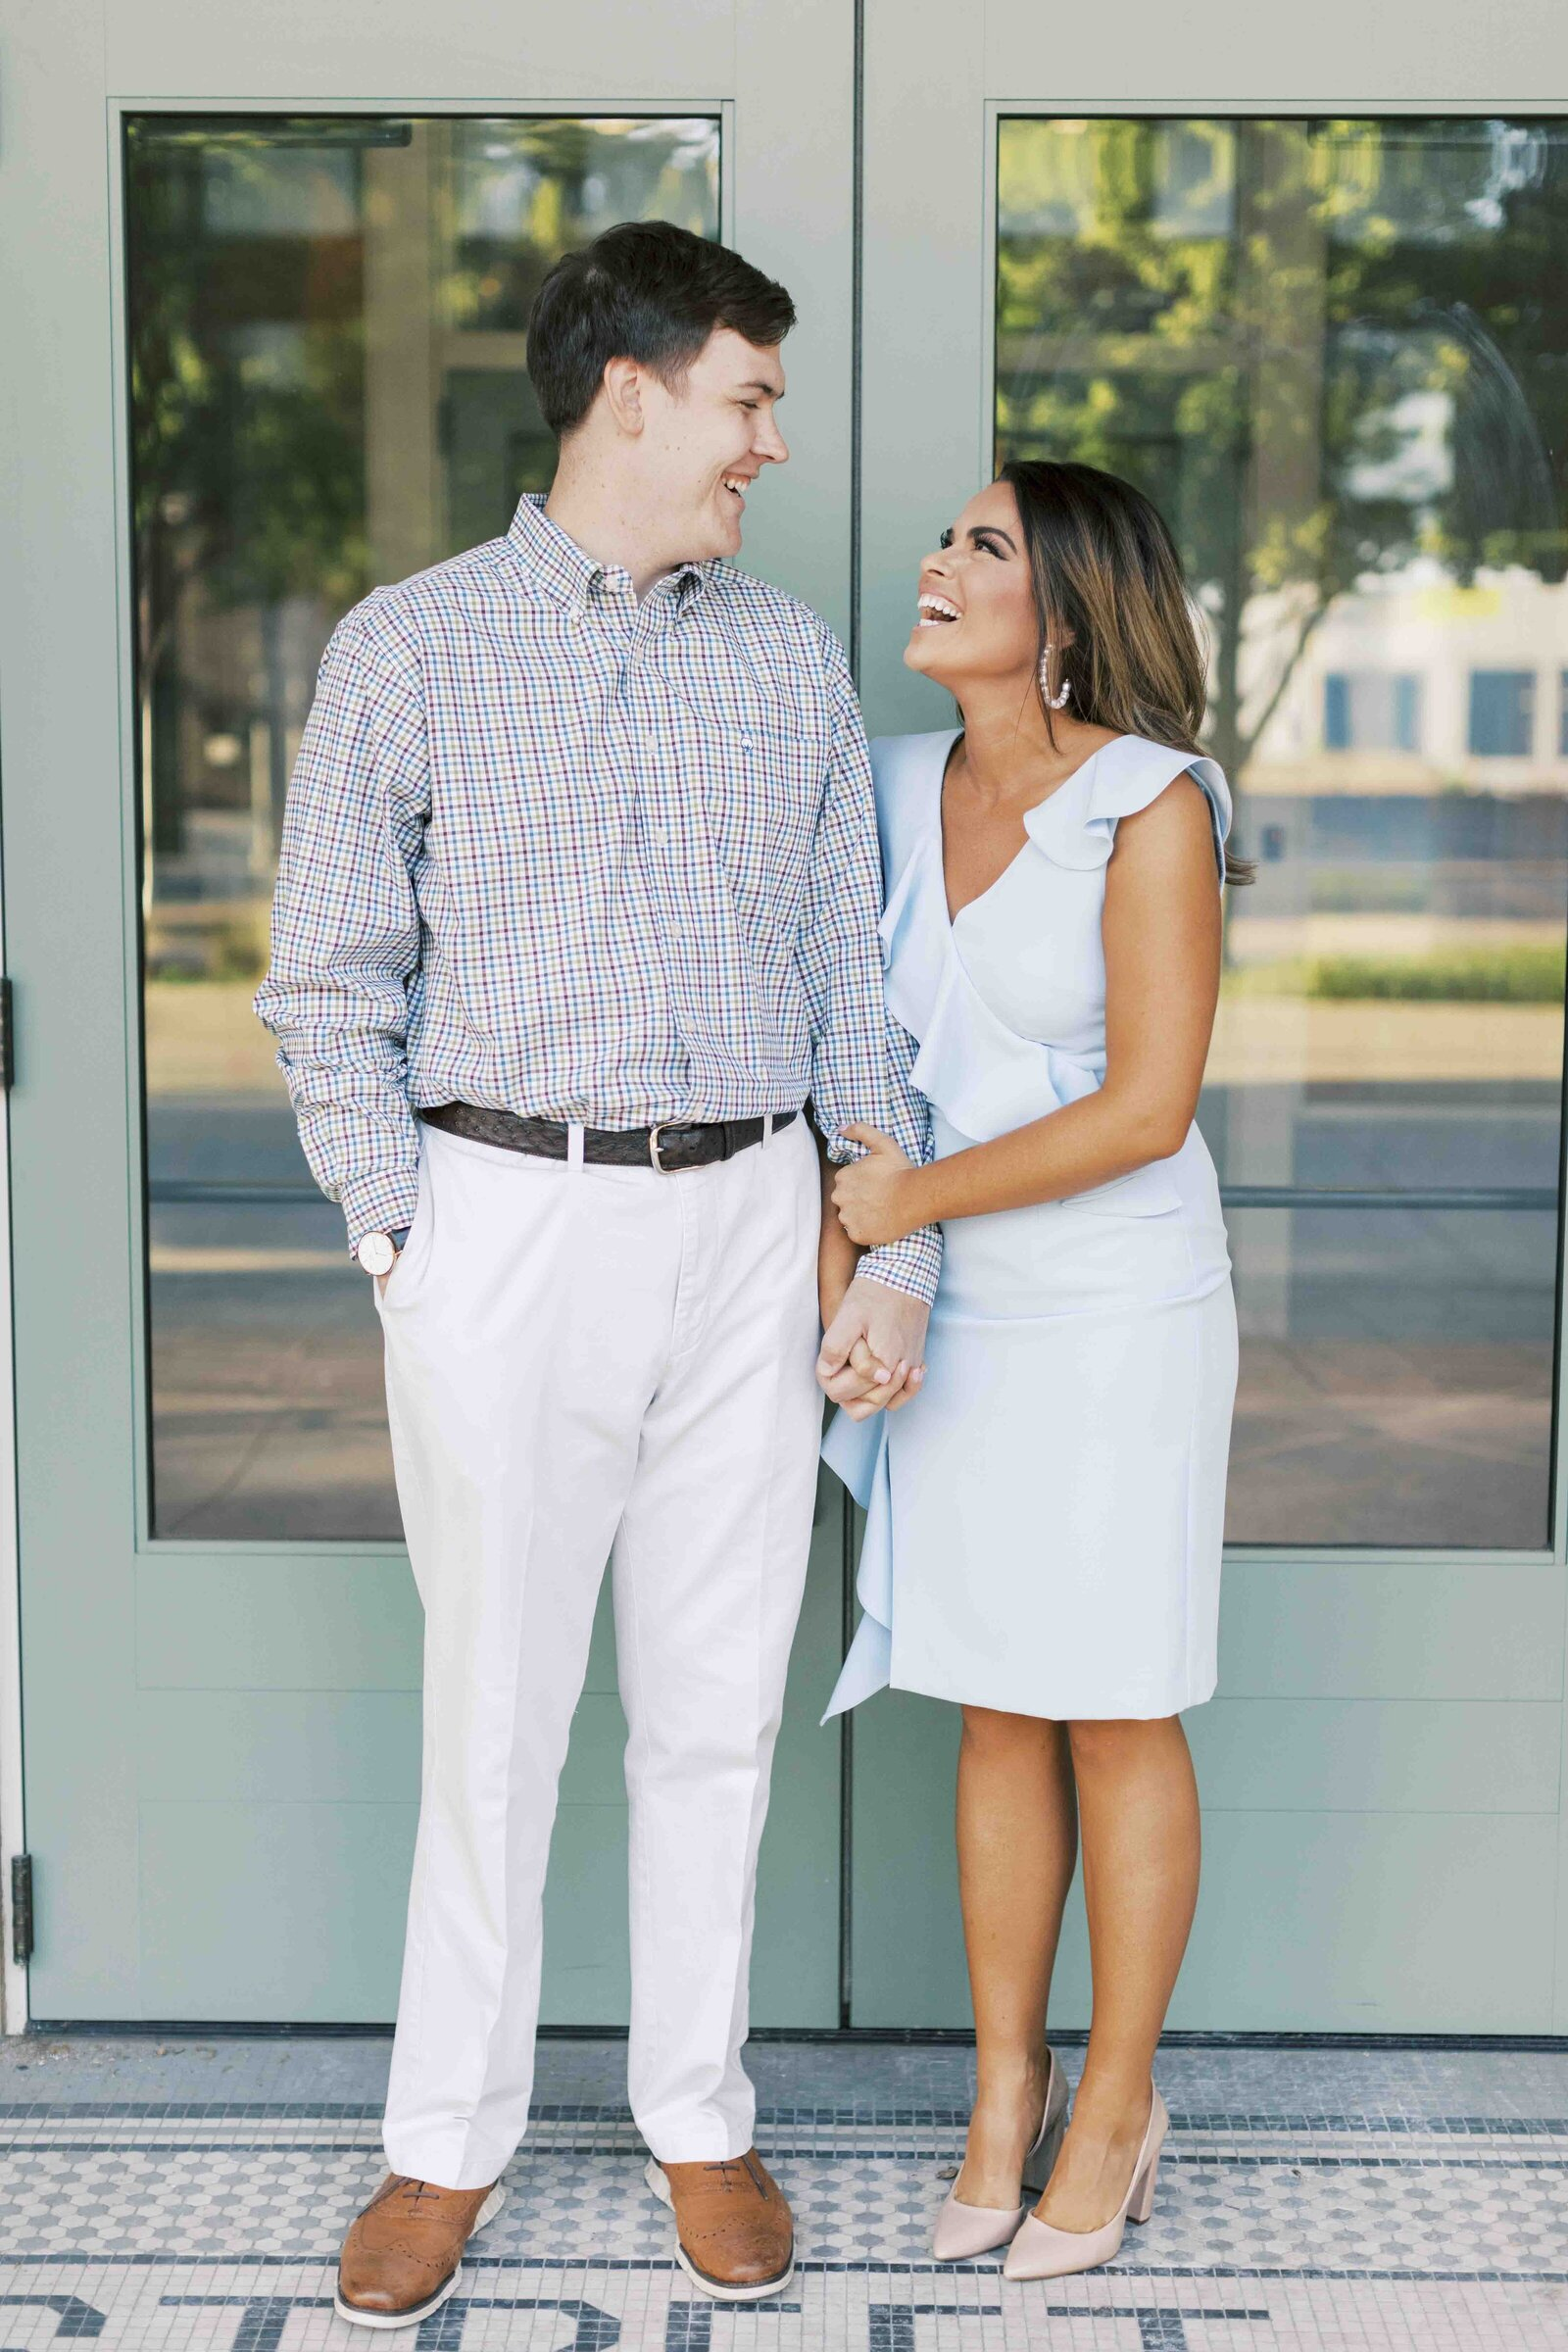 OKC-engagement-photographer01